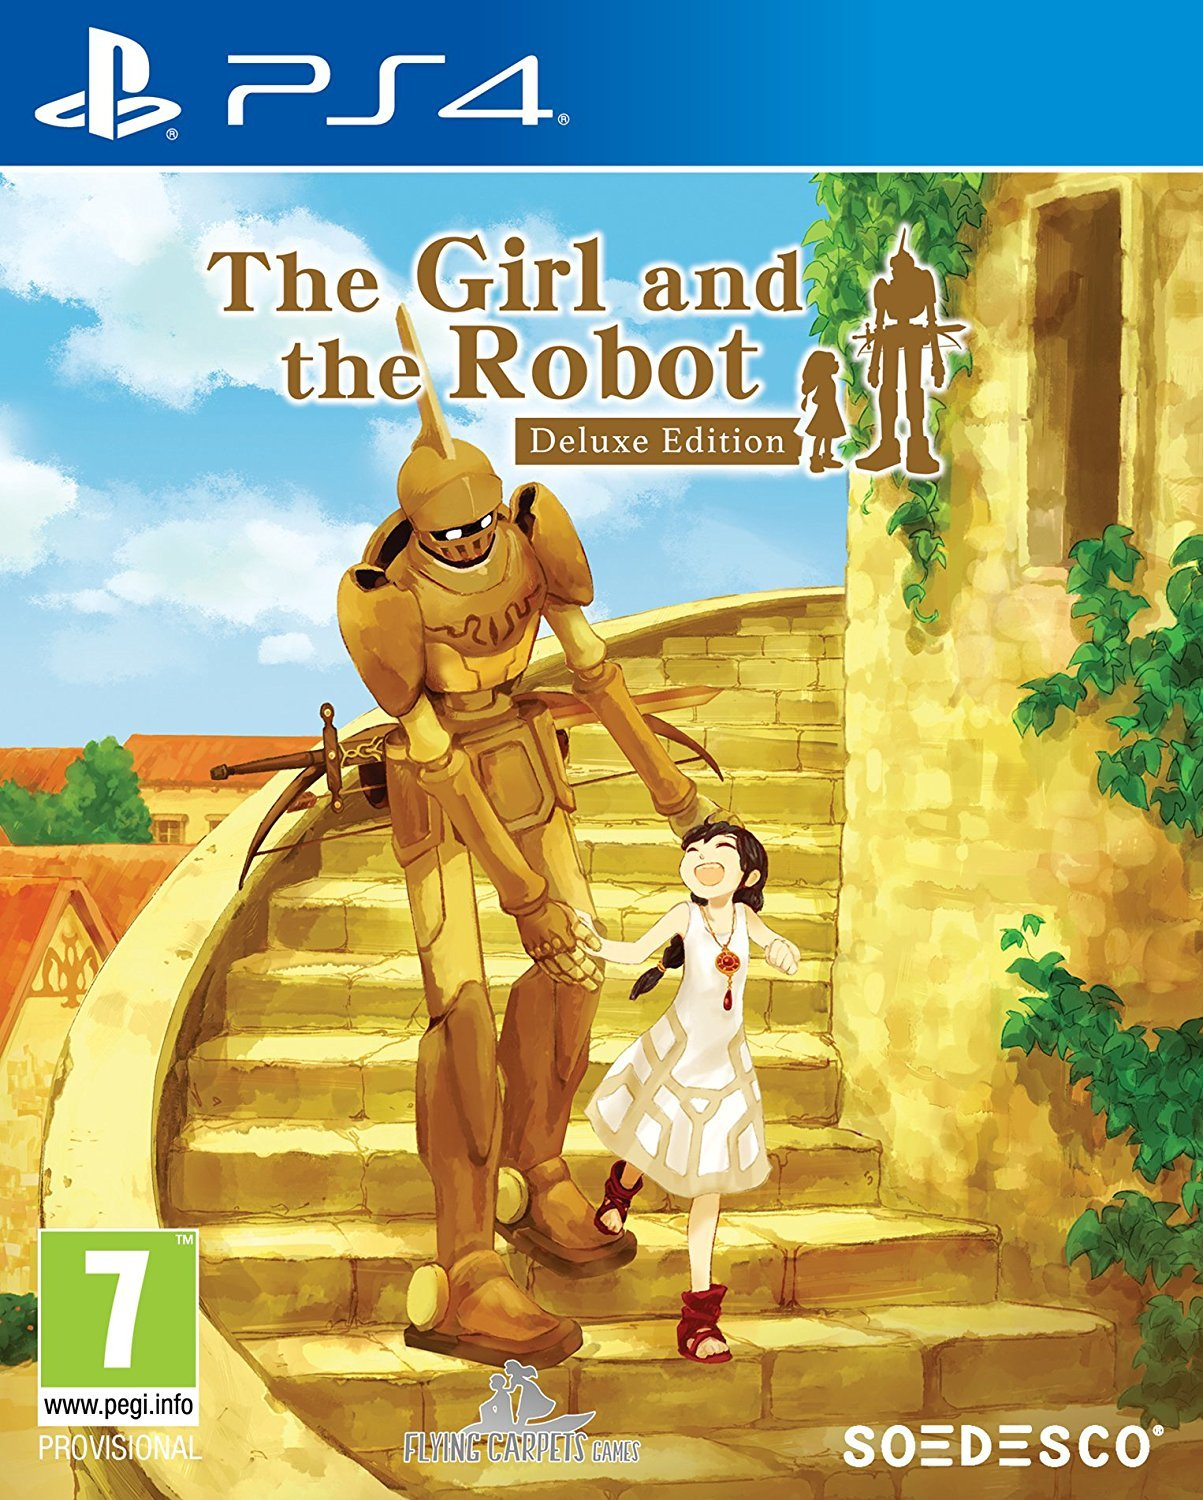 The Girl and the Robot Deluxe Edition for PS4 image